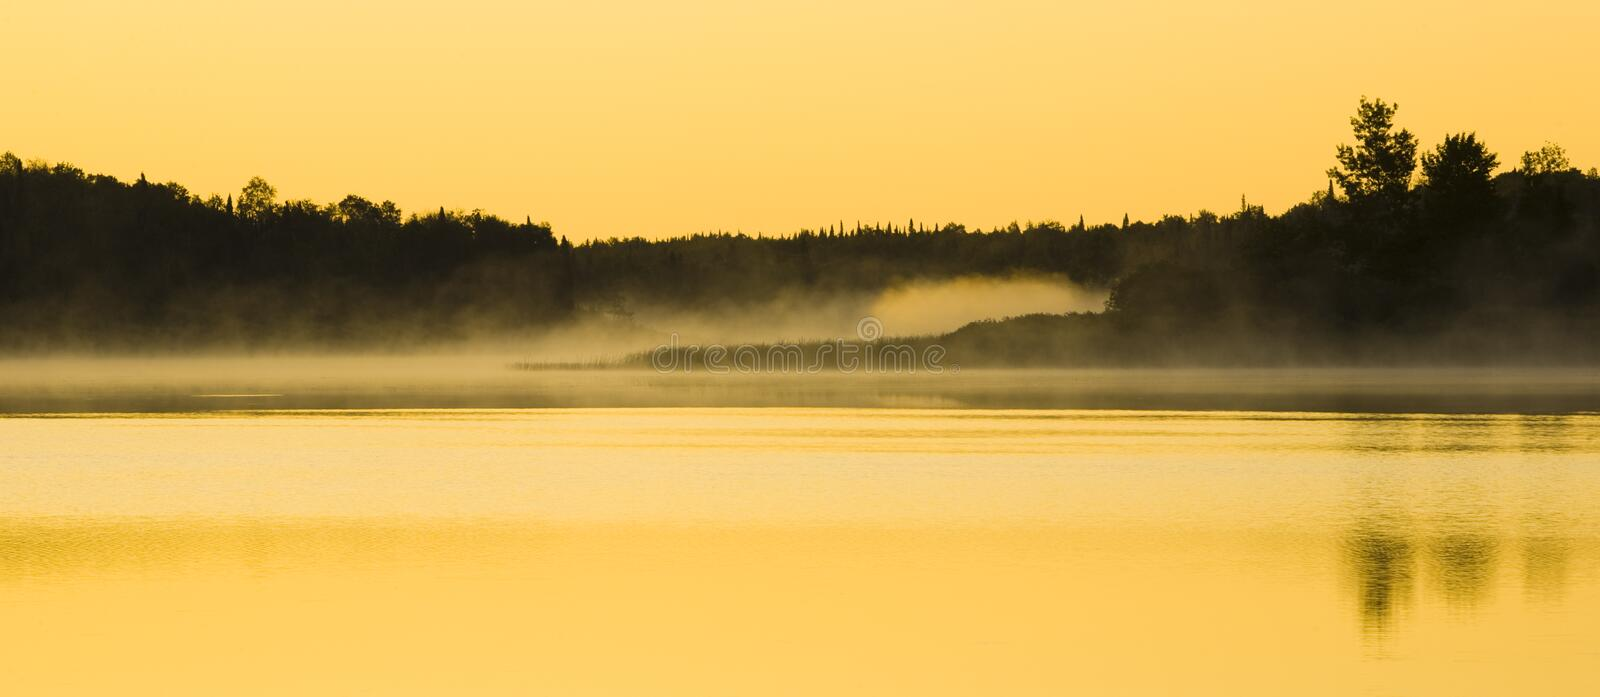 Download Sunlight on Mist and Water stock image. Image of mist - 10235157